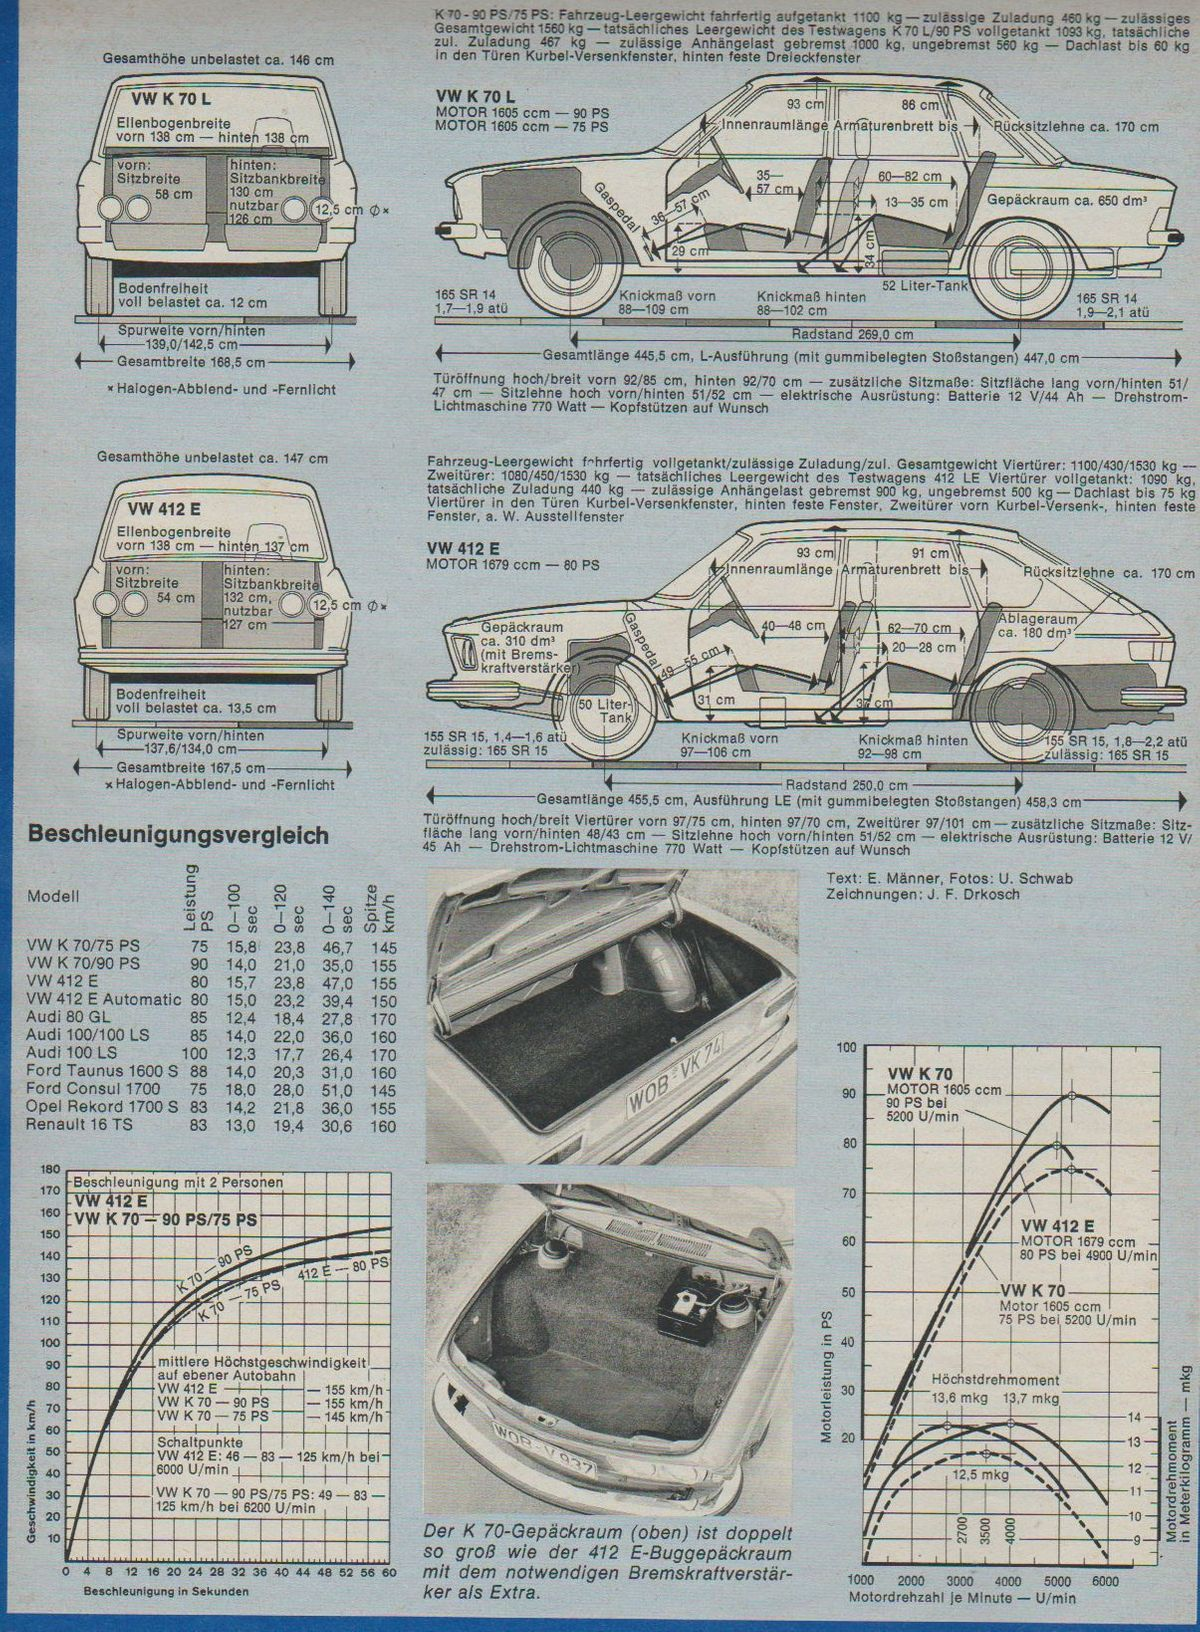 mot auto-journal 26 - 04.11.1972 S. 24